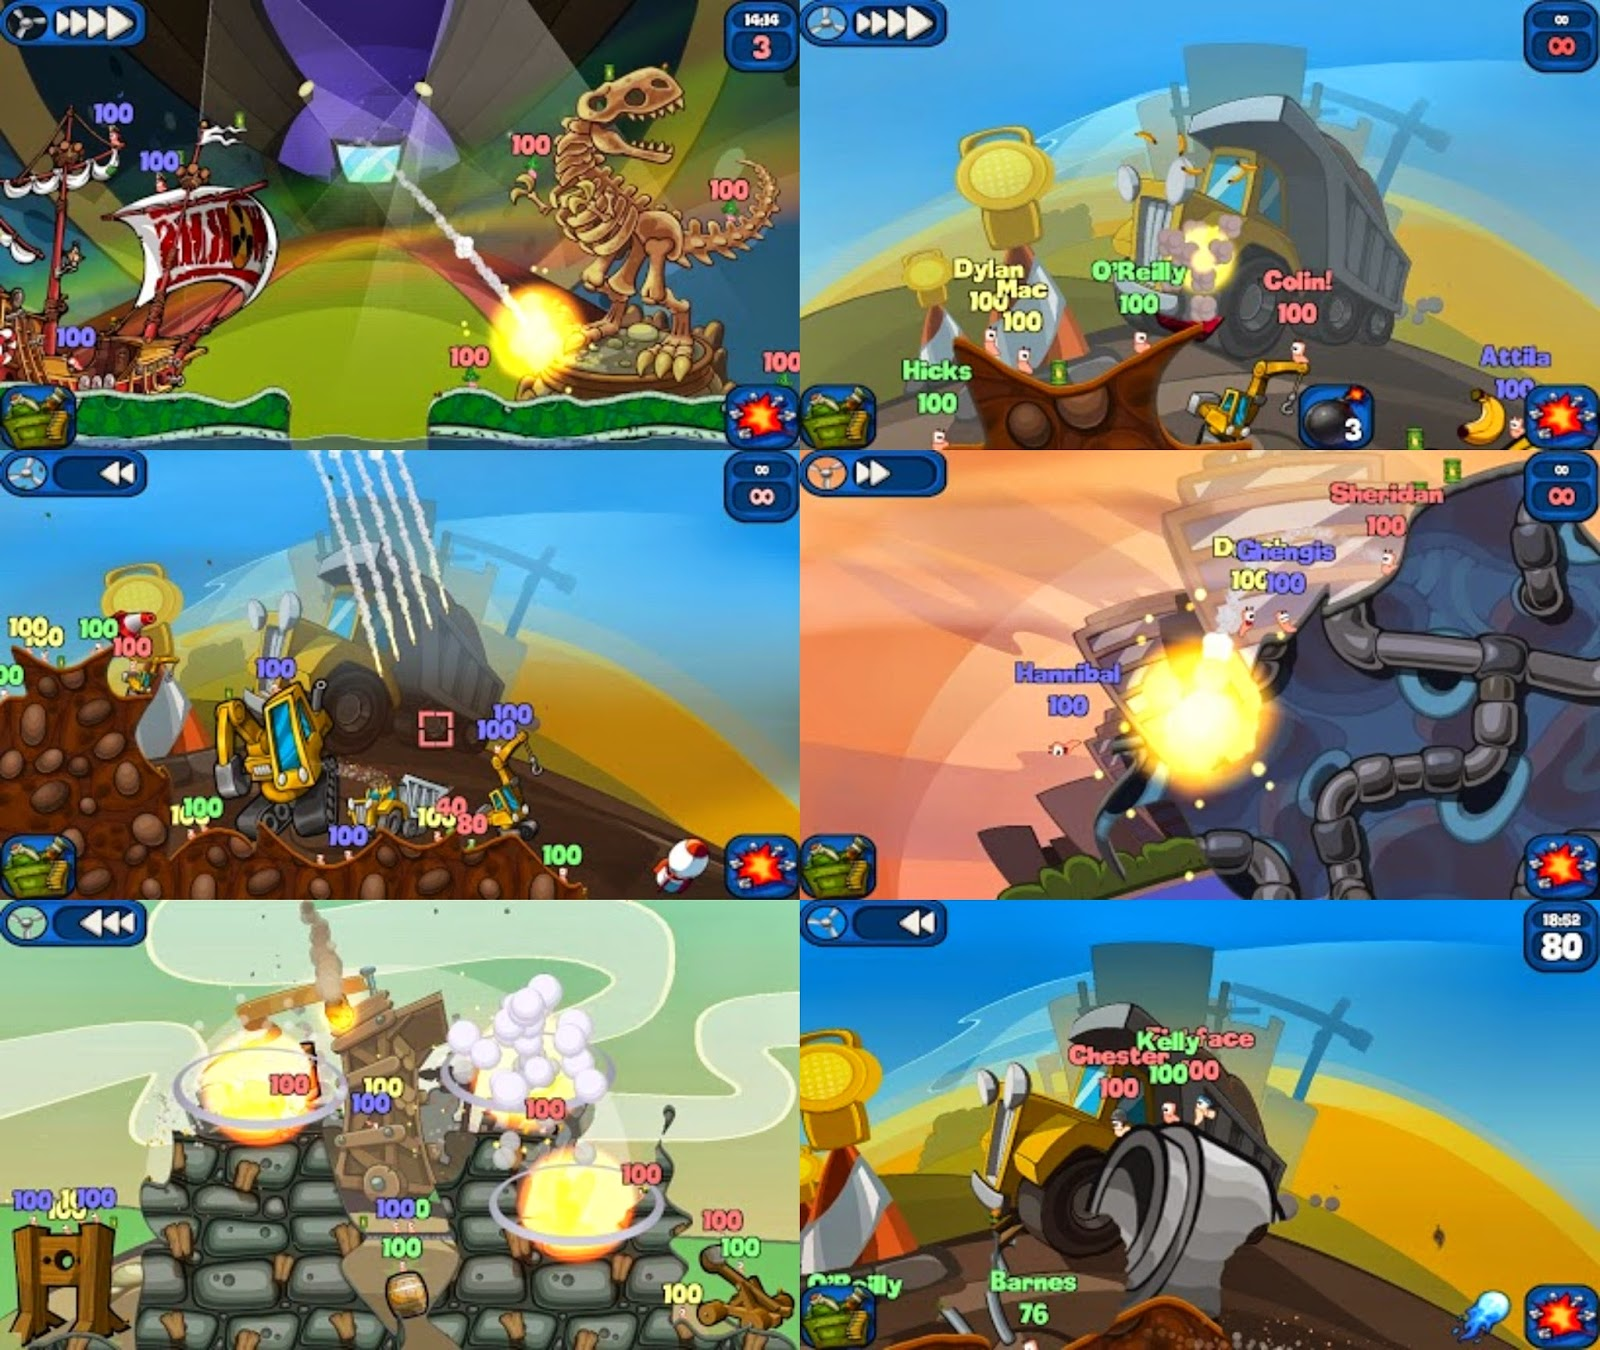 Worms 2 Armageddon Apk Data v1.4.1 For Android